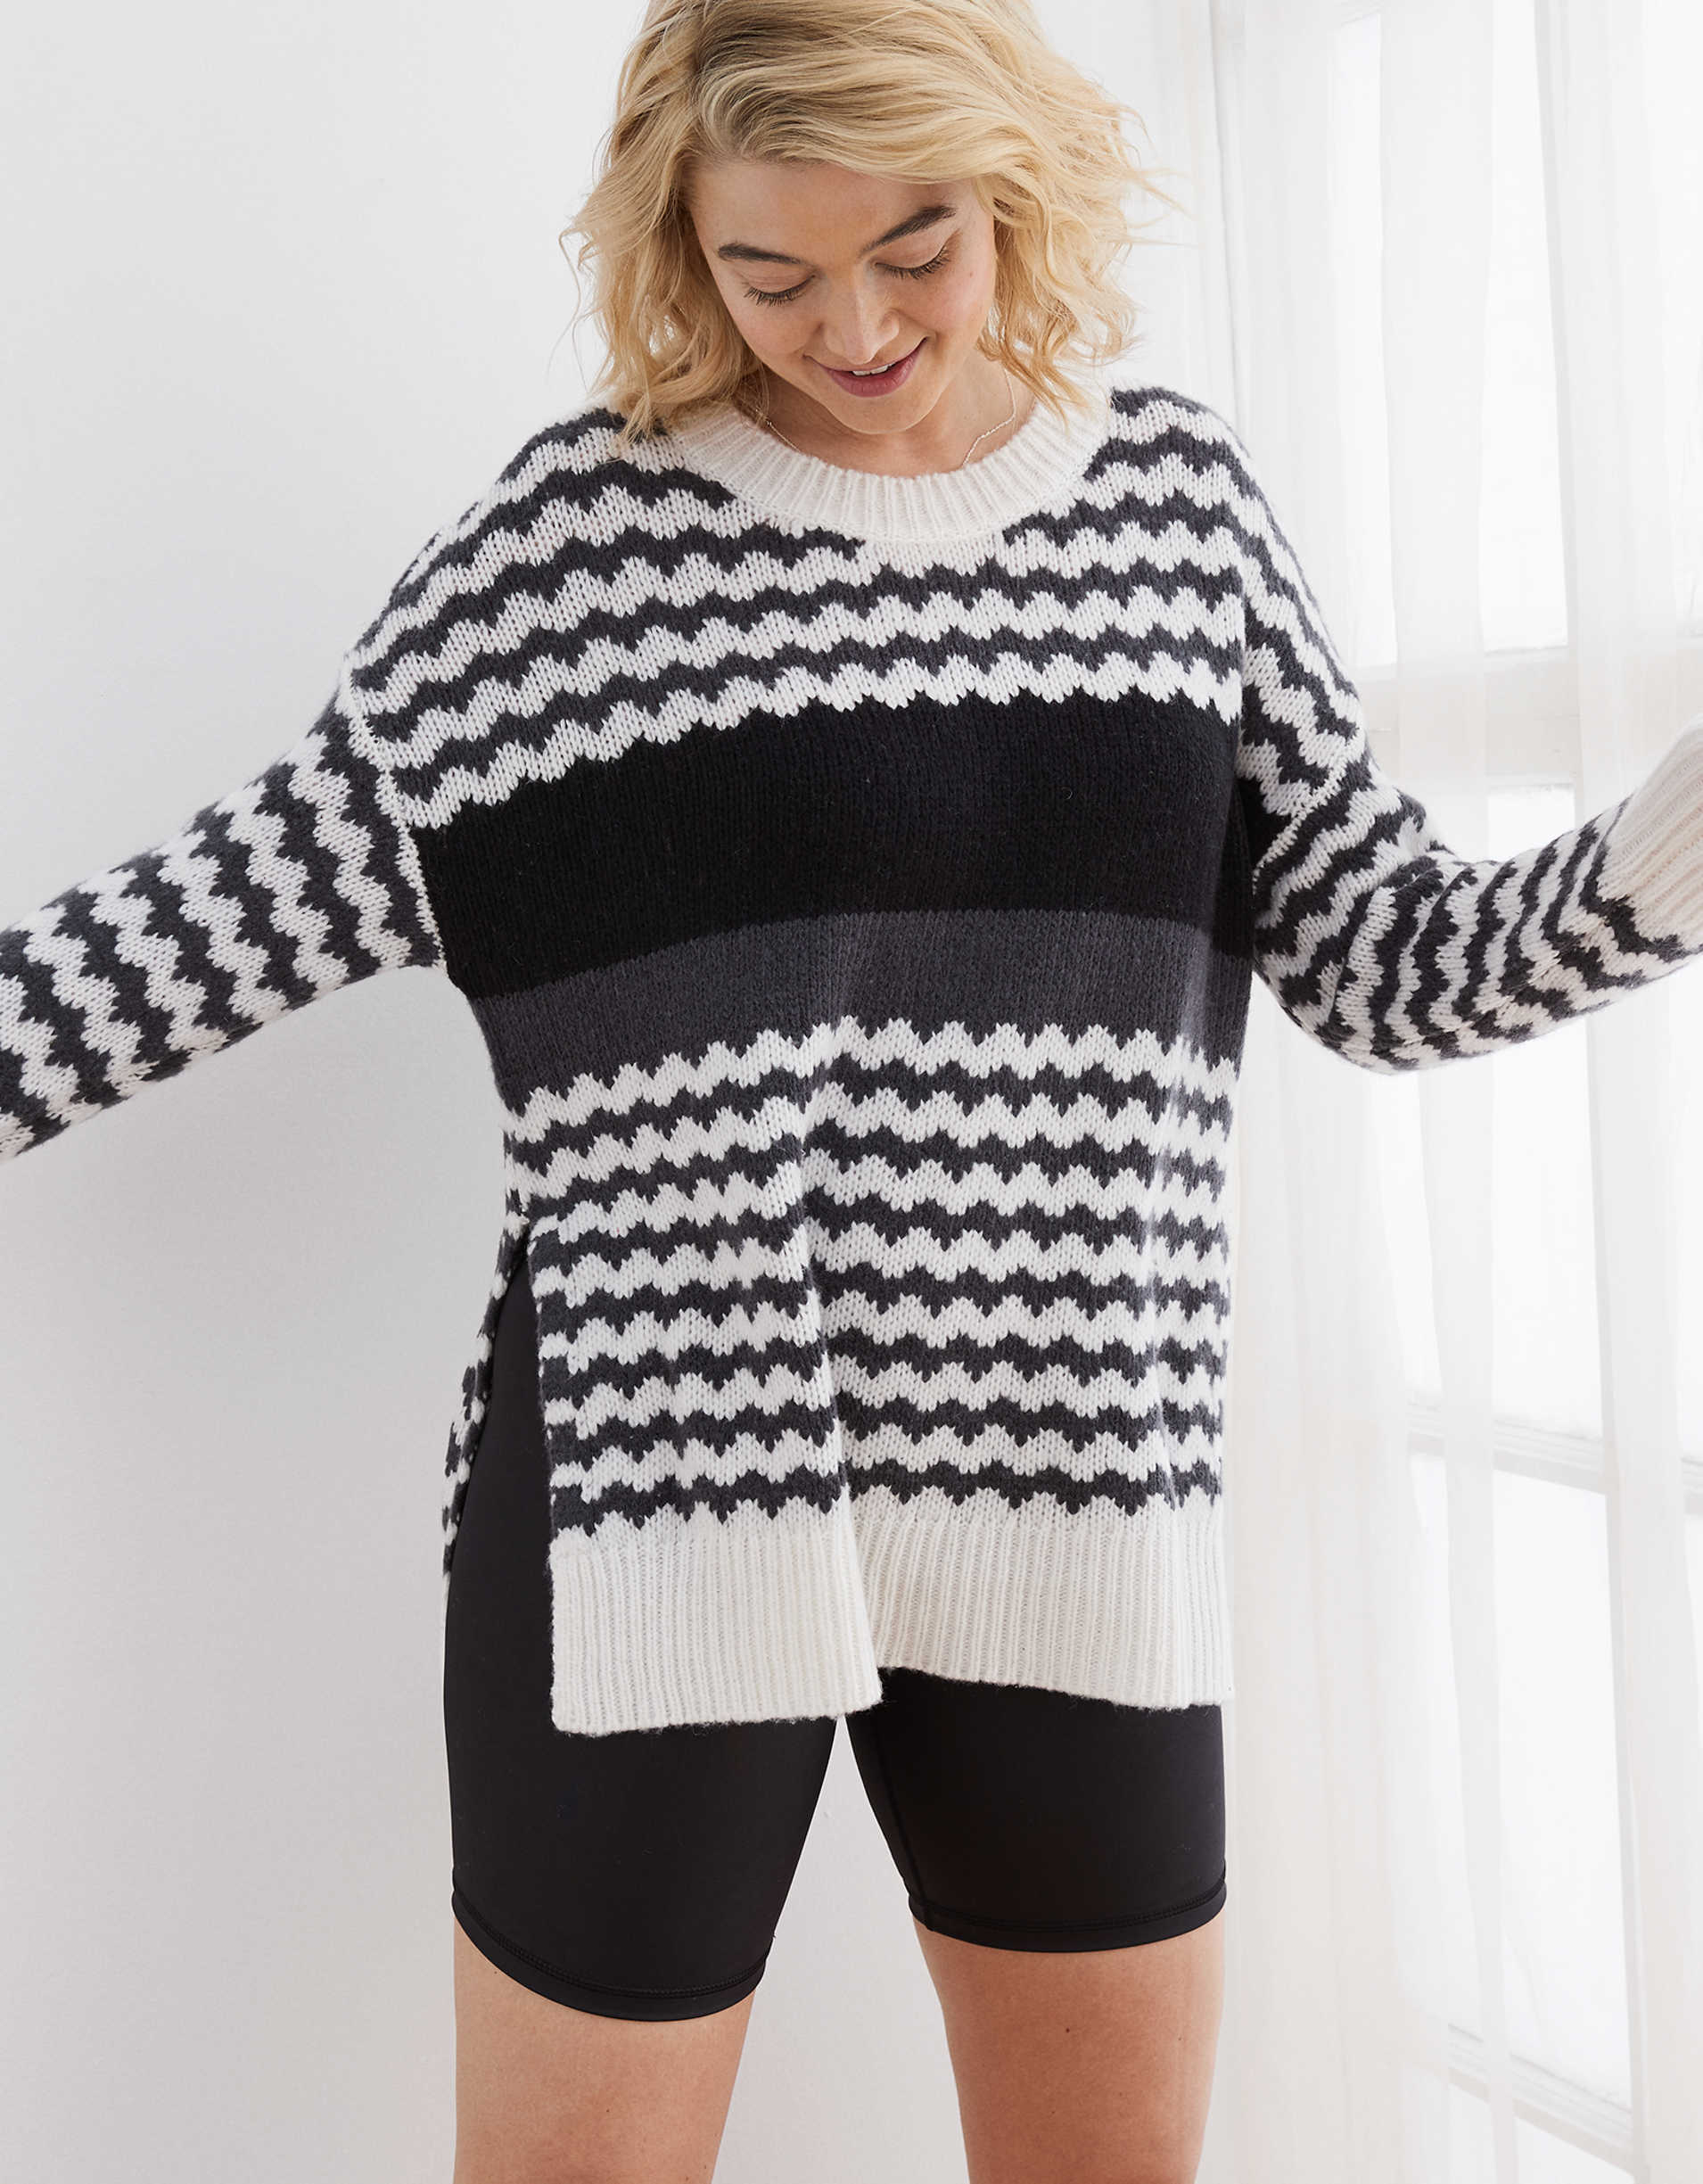 Aerie Fairisle Oversized Sweater